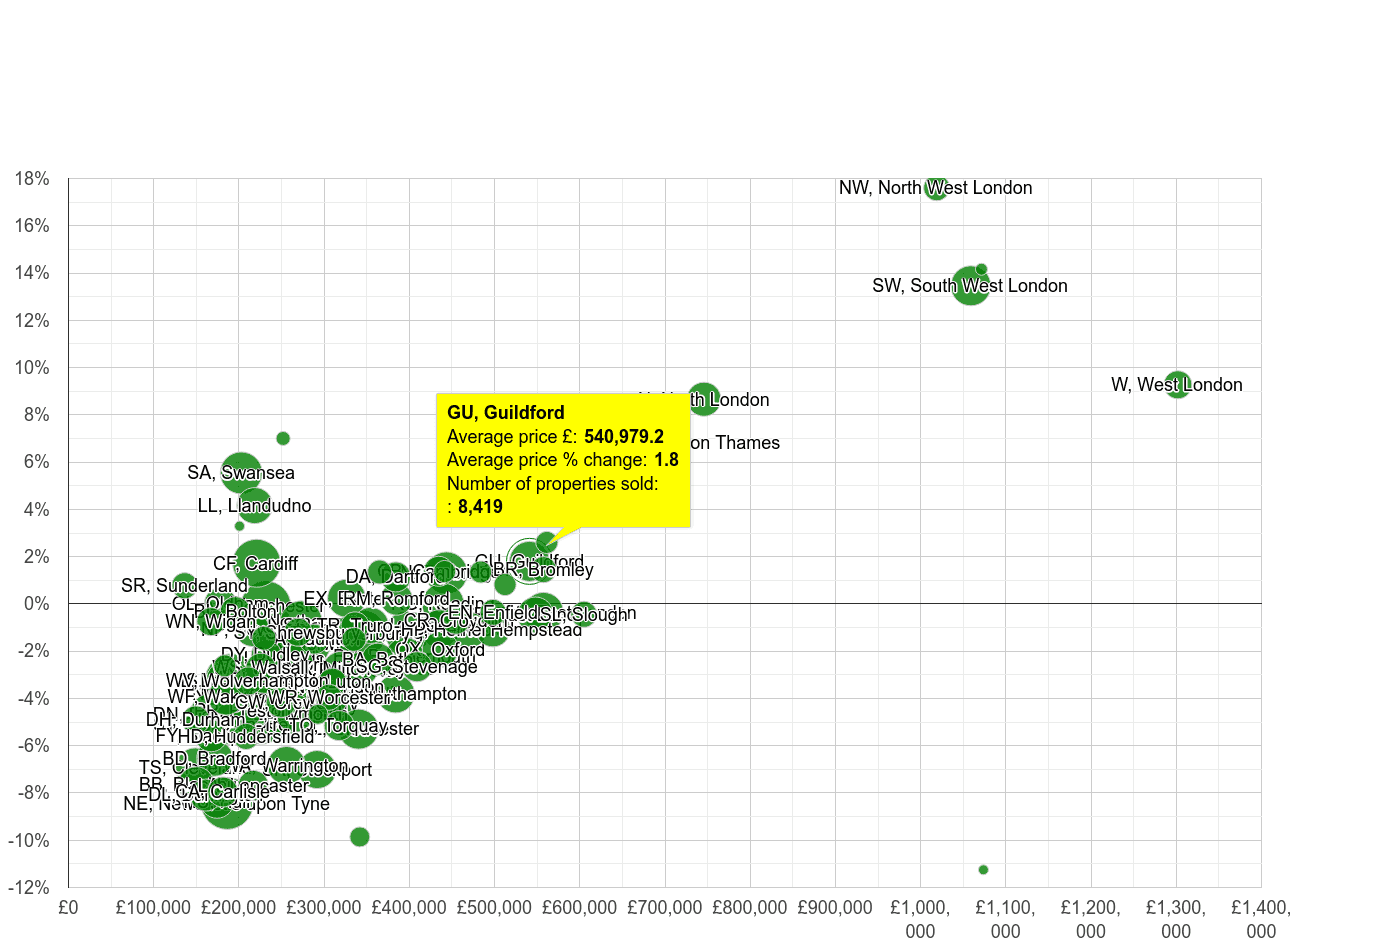 Guildford house prices compared to other areas